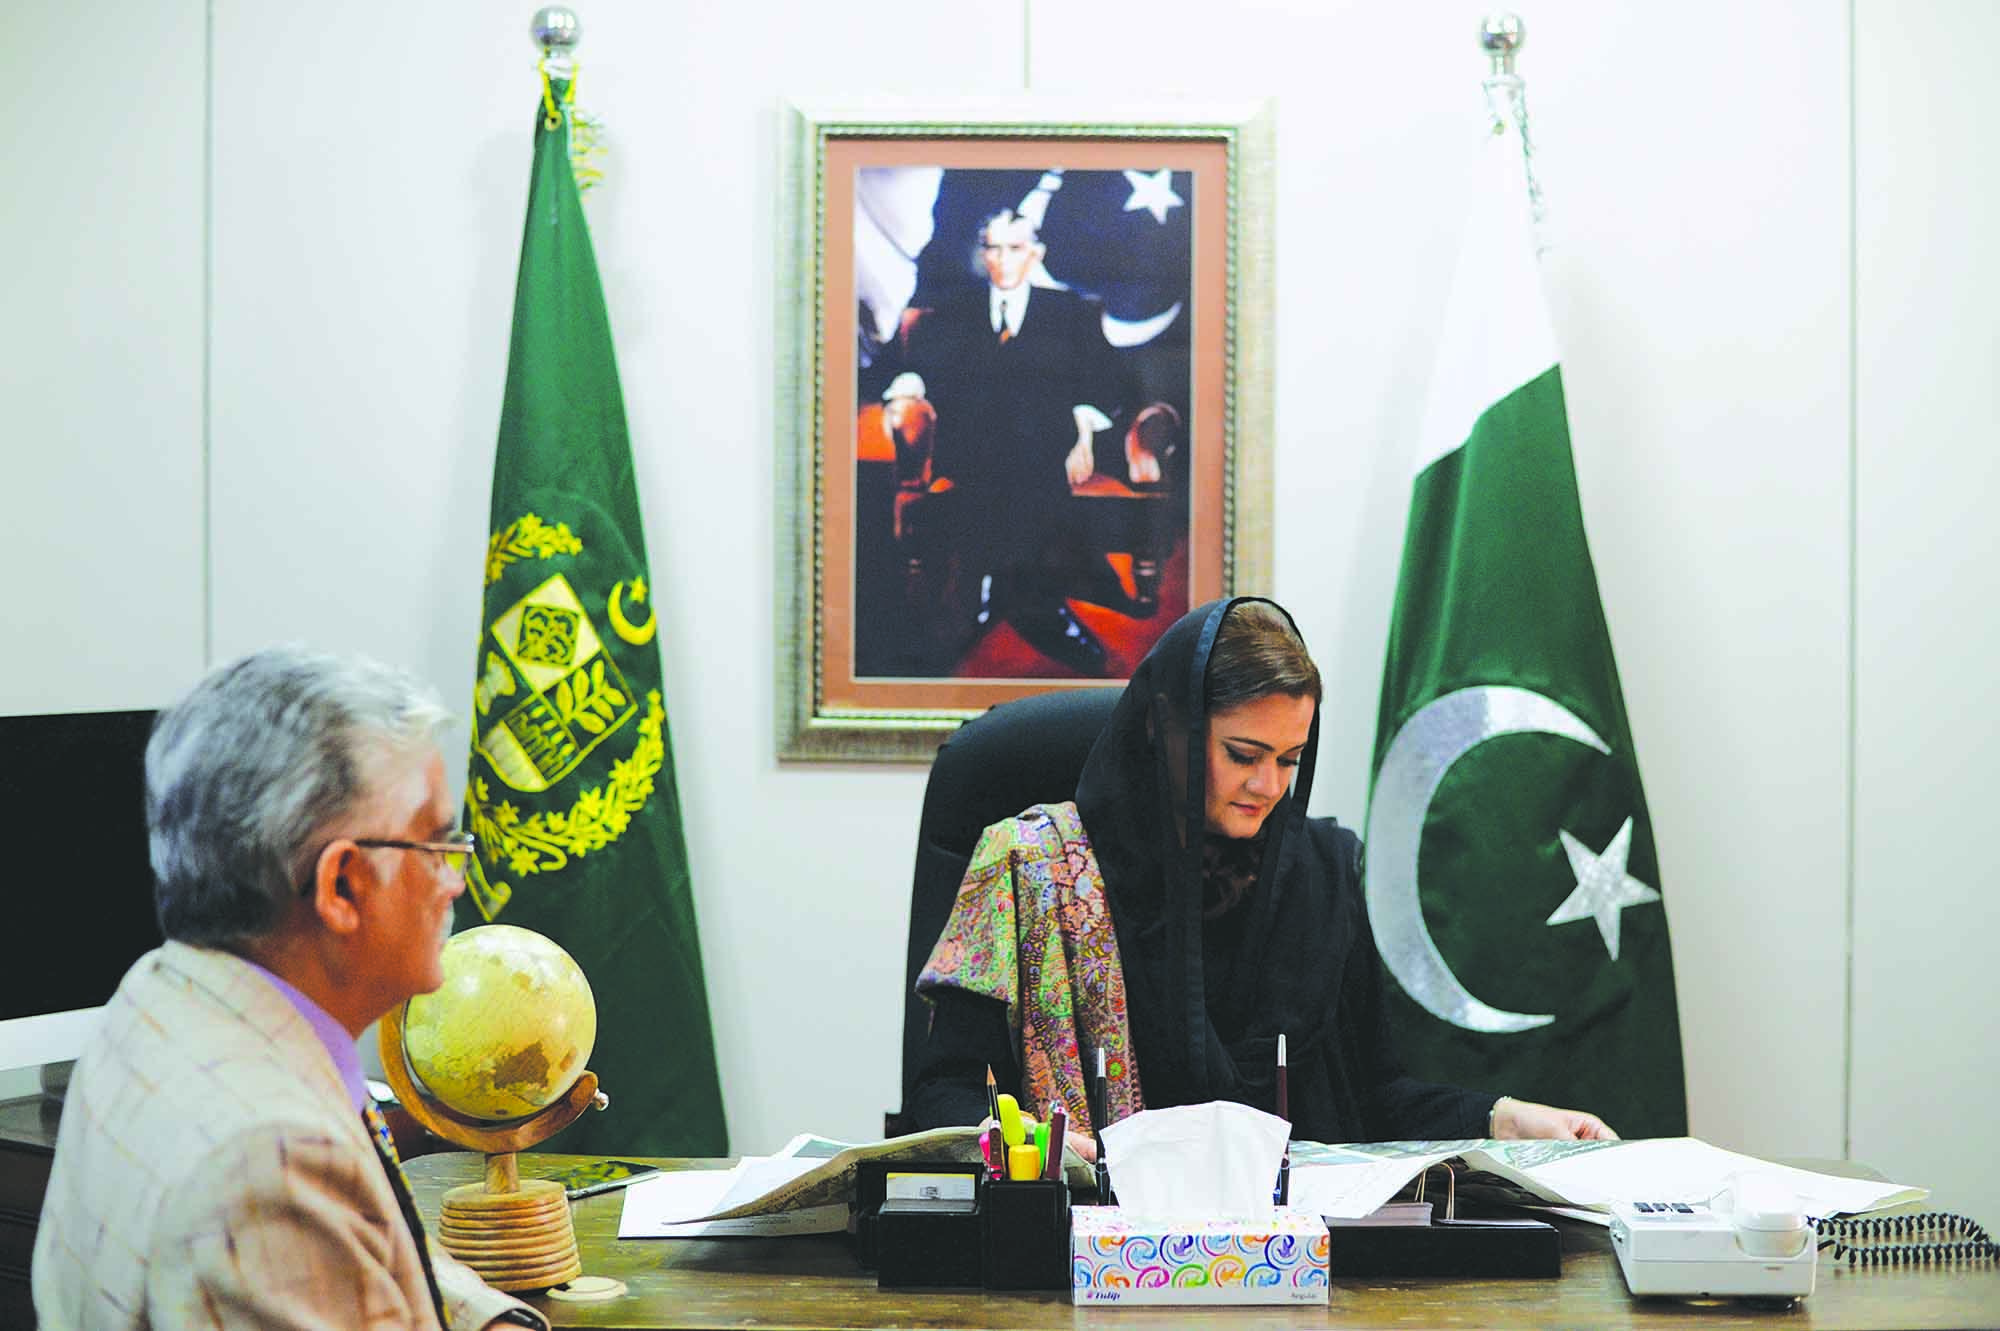 Marriyum Aurangzeb, Minister of State for Information, Broadcasting & National Heritage, reads her copy of Dawn at the Press Information Department (PID) in Islamabad. The Government of Pakistan (GOP) is the country's top advertiser across all media platforms. It is the only client which offers a 15% commission on all media placements to media buying houses. According to the Aurora Fact File, in FY 2016-17, GOP was the fourth largest advertiser in print. The Ministry of Information, Broadcasting & National Heritage disposes of a comprehensive database of rare photographs dating to 1947. Several of these photos appeared for the first time in The Dawn of Pakistan (1906-1948), a 37-episode photo-feature released by The Dawn Media Group to mark Pakistan's 70th birthday. Marriyum Aurangzeb recently announced Pakistan's first film and cultural policy. The policy formally accorded the status of an 'industry' to films and abolished the duty on the import of film equipment to incentivise local production. (photo: Arif Mahmood/ Dawn White Star)